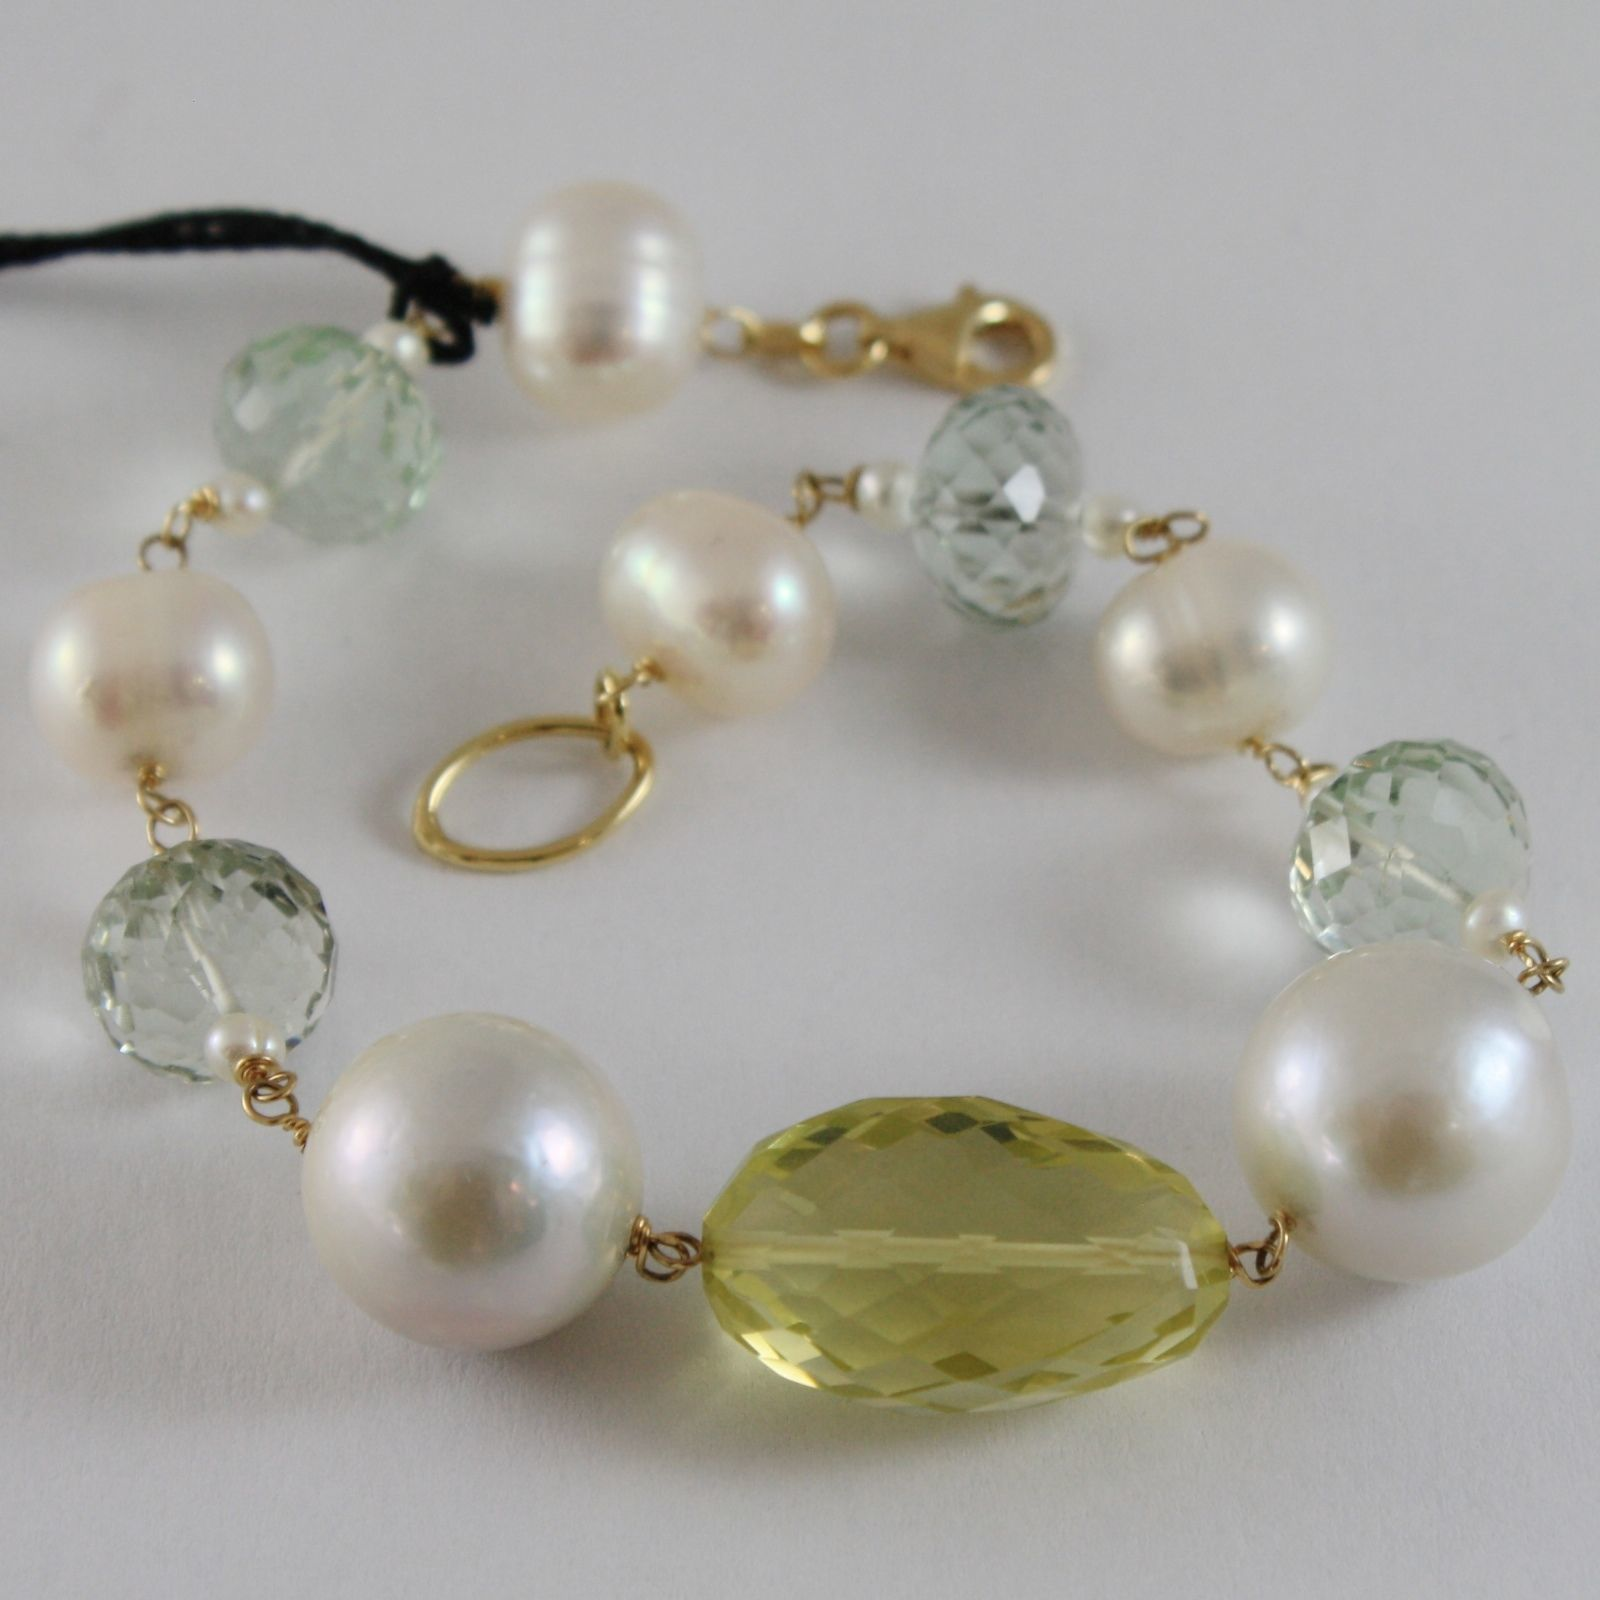 18K YELLOW GOLD BRACELET BIG WHITE PEARLS PRASIOLITE LEMON QUARTZ MADE IN ITALY